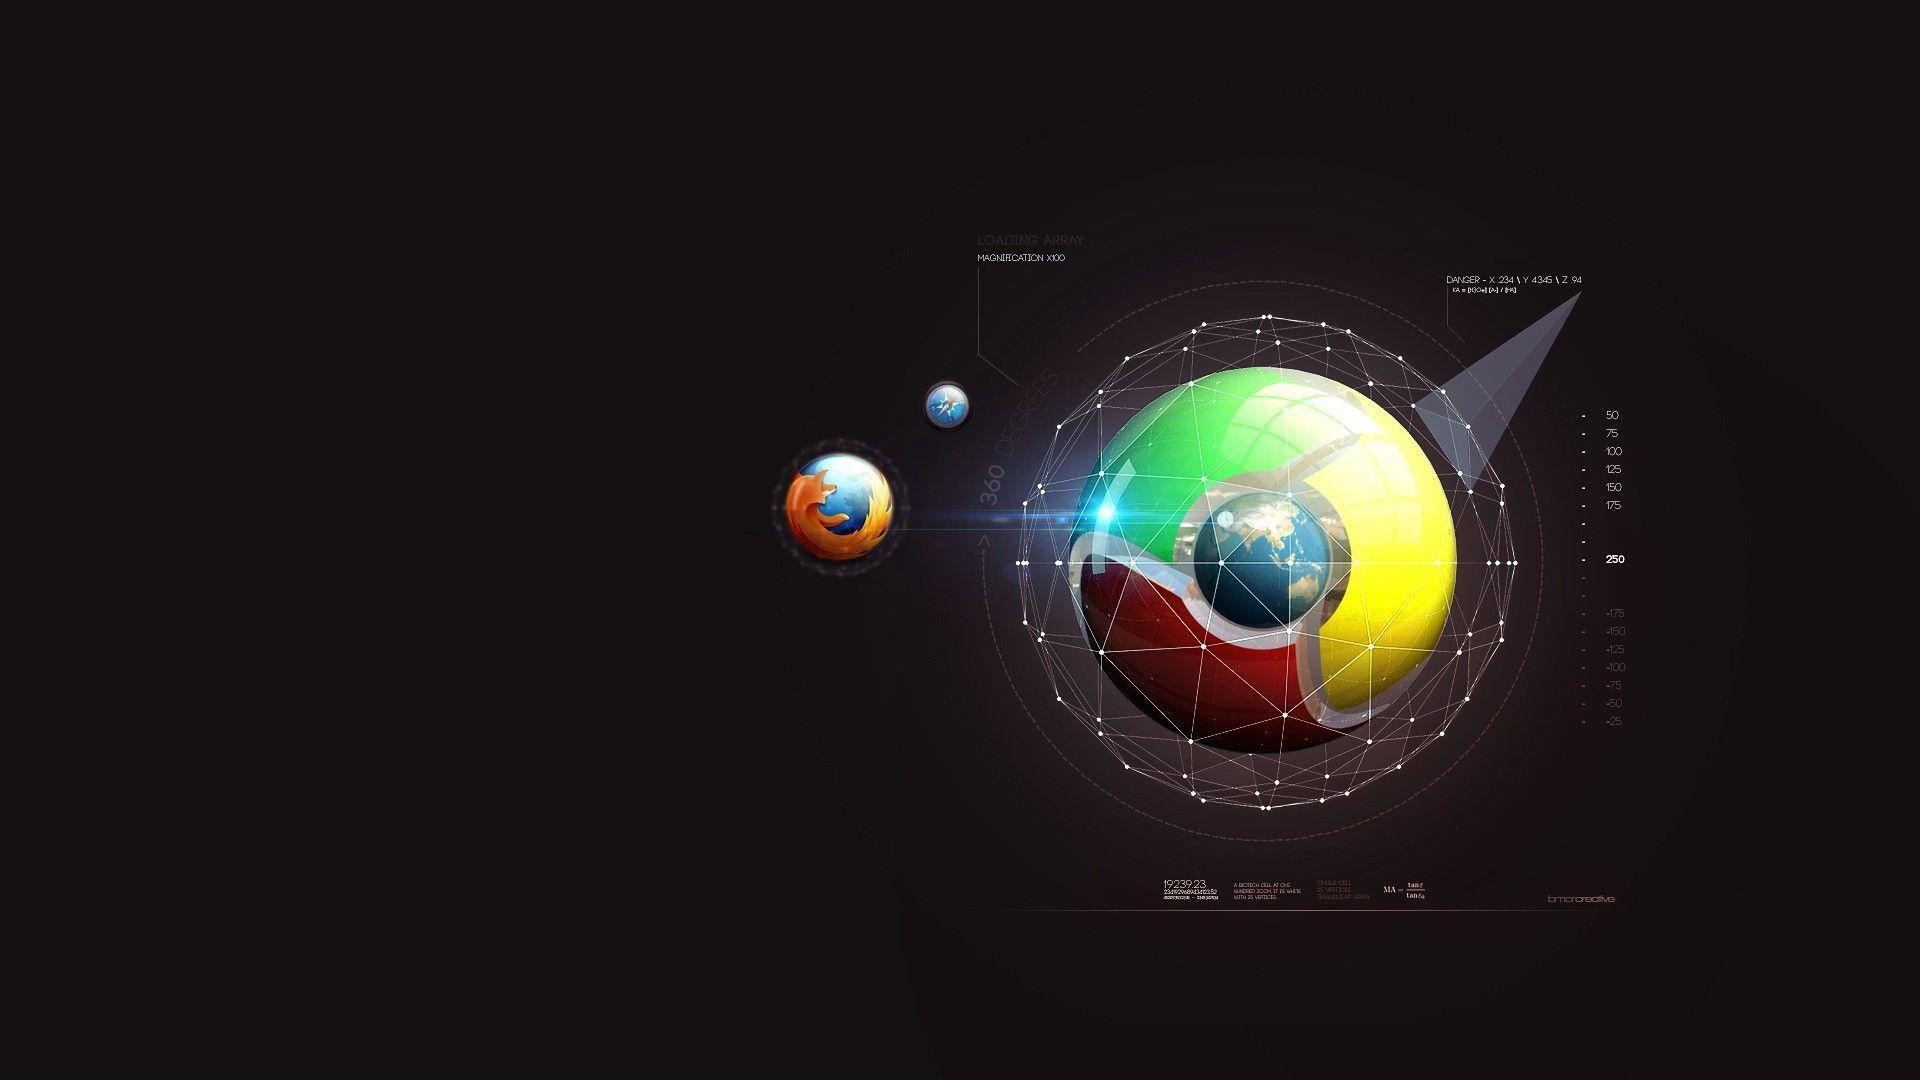 Computers Social Networks Firefox Google Chrome Wallpapers 1920